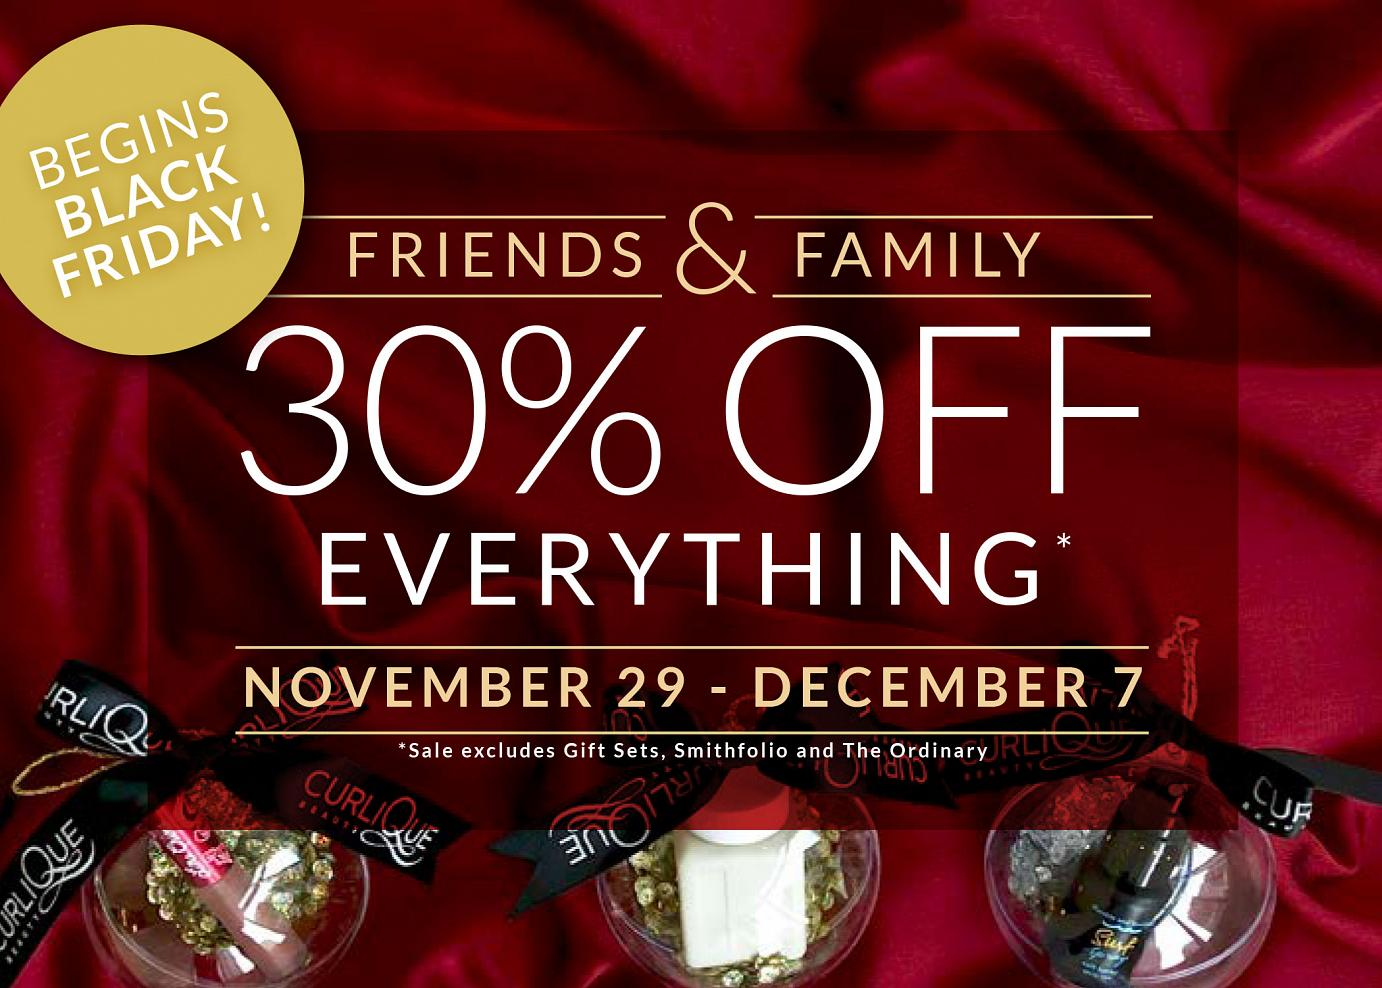 Annual Friends & Family Holiday Sale - 30% OFF (Extended!)